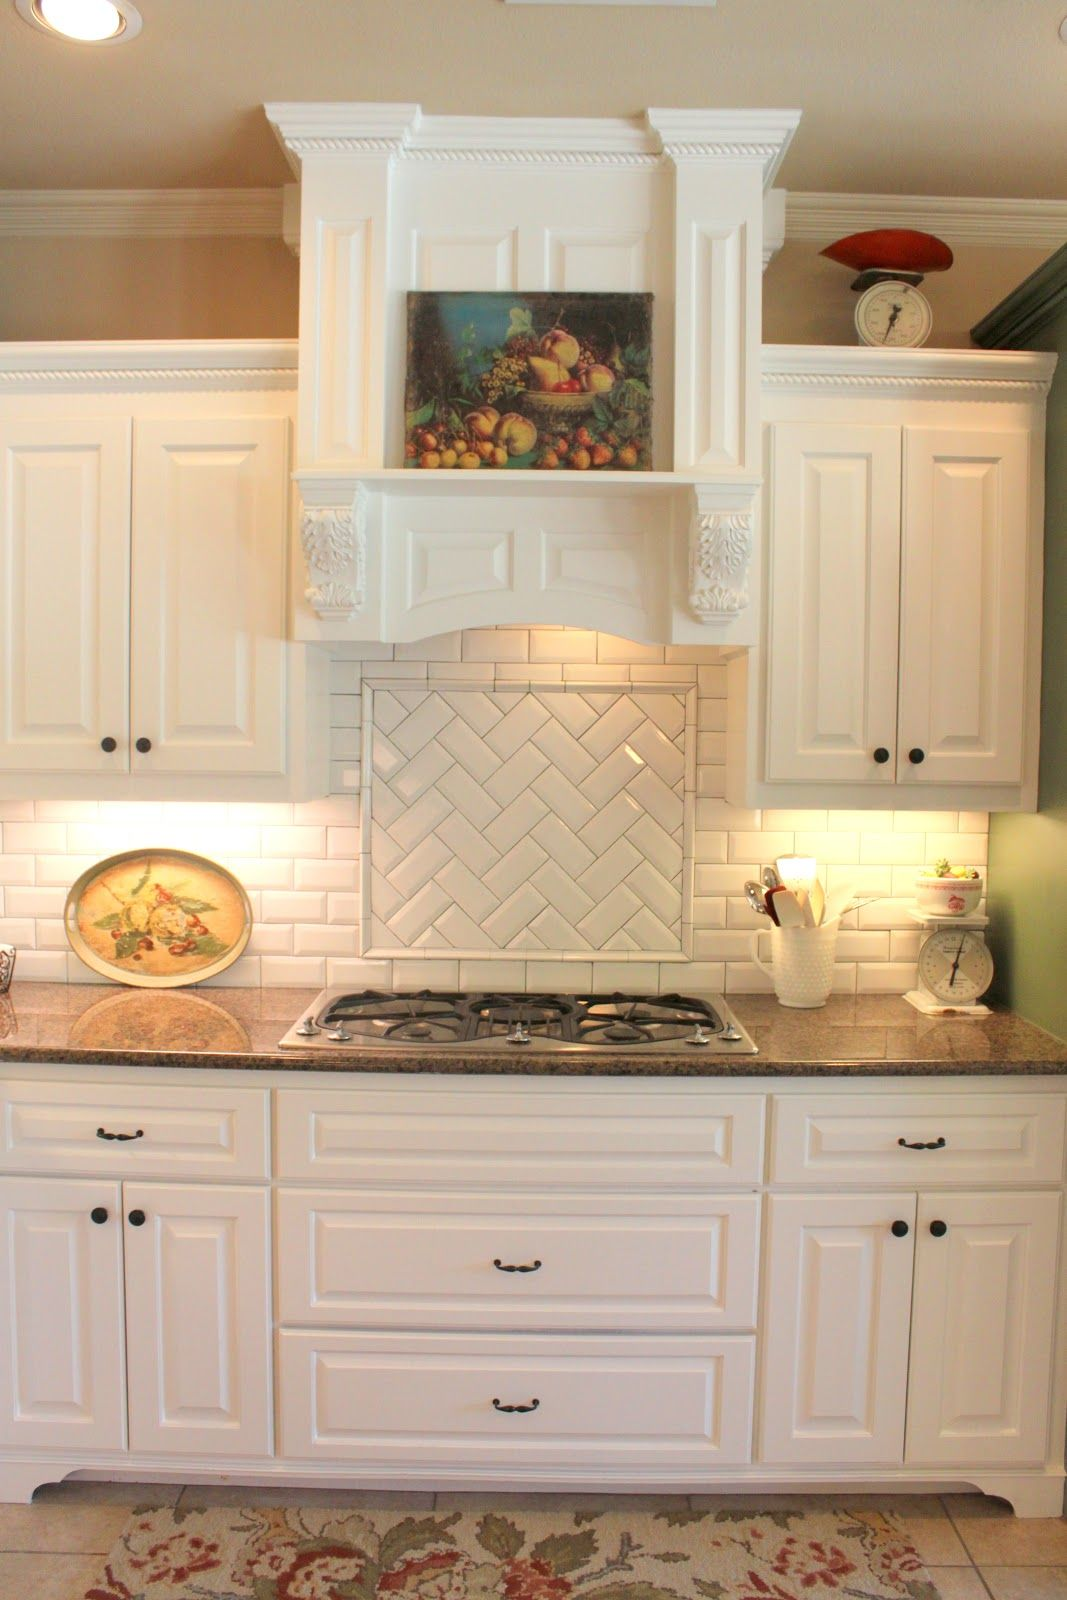 White backsplash subway tiles for your kitchen will enhance your kitchen's  backsplash.